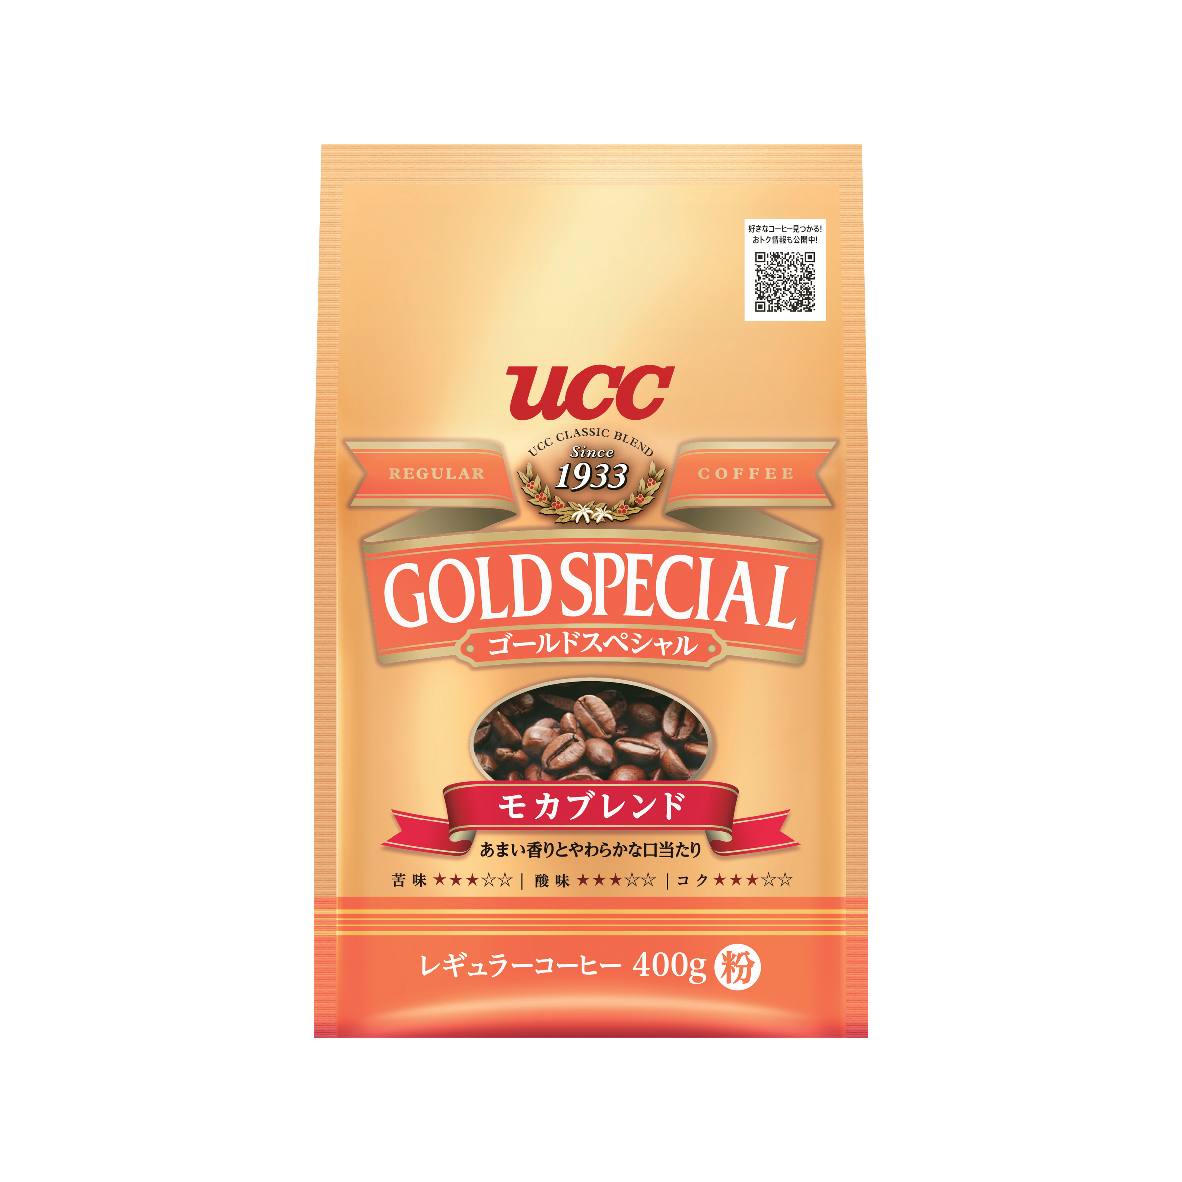 UCC Gold Special Mocha Blend Roasted Coffee